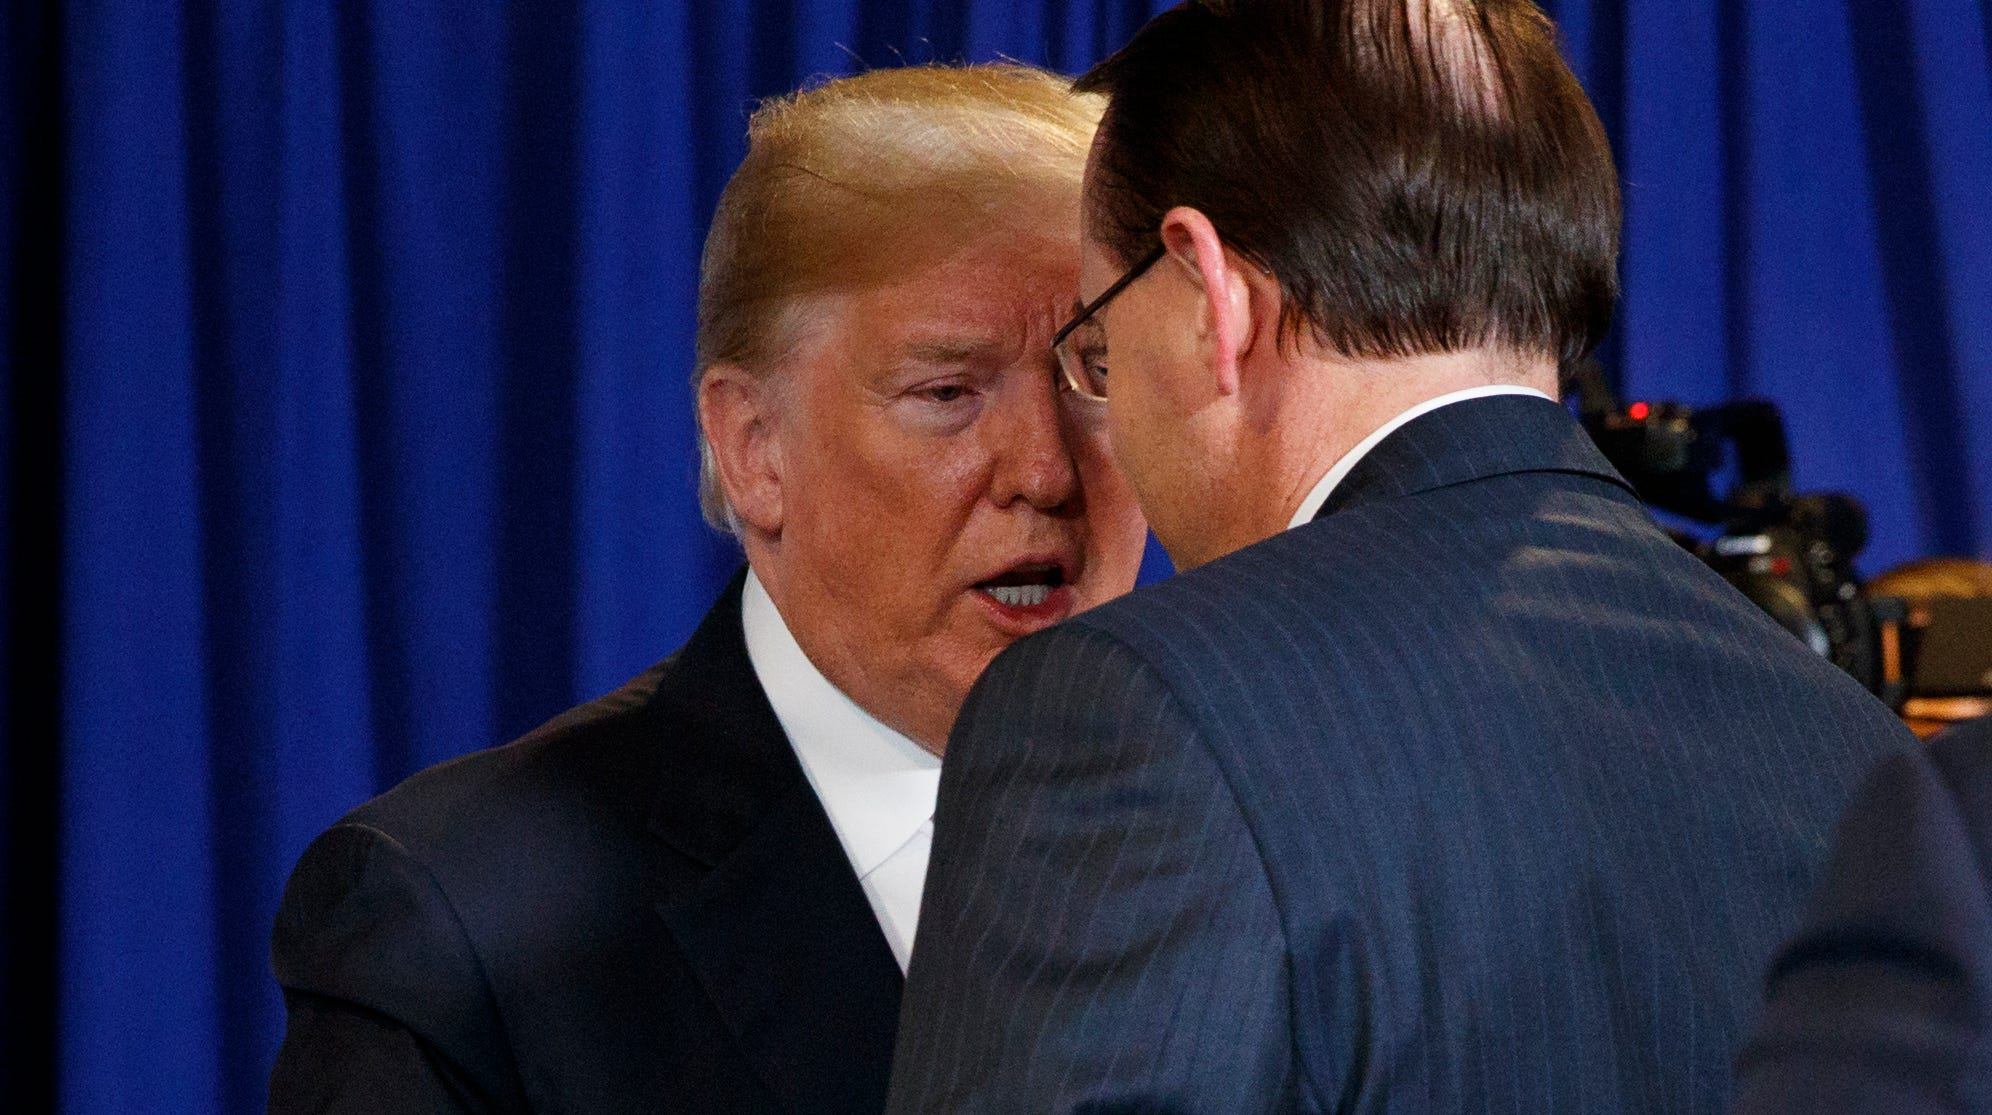 President Donald Trump shakes hands with Deputy Attorney General Rod Rosenstein at a policy event in May.